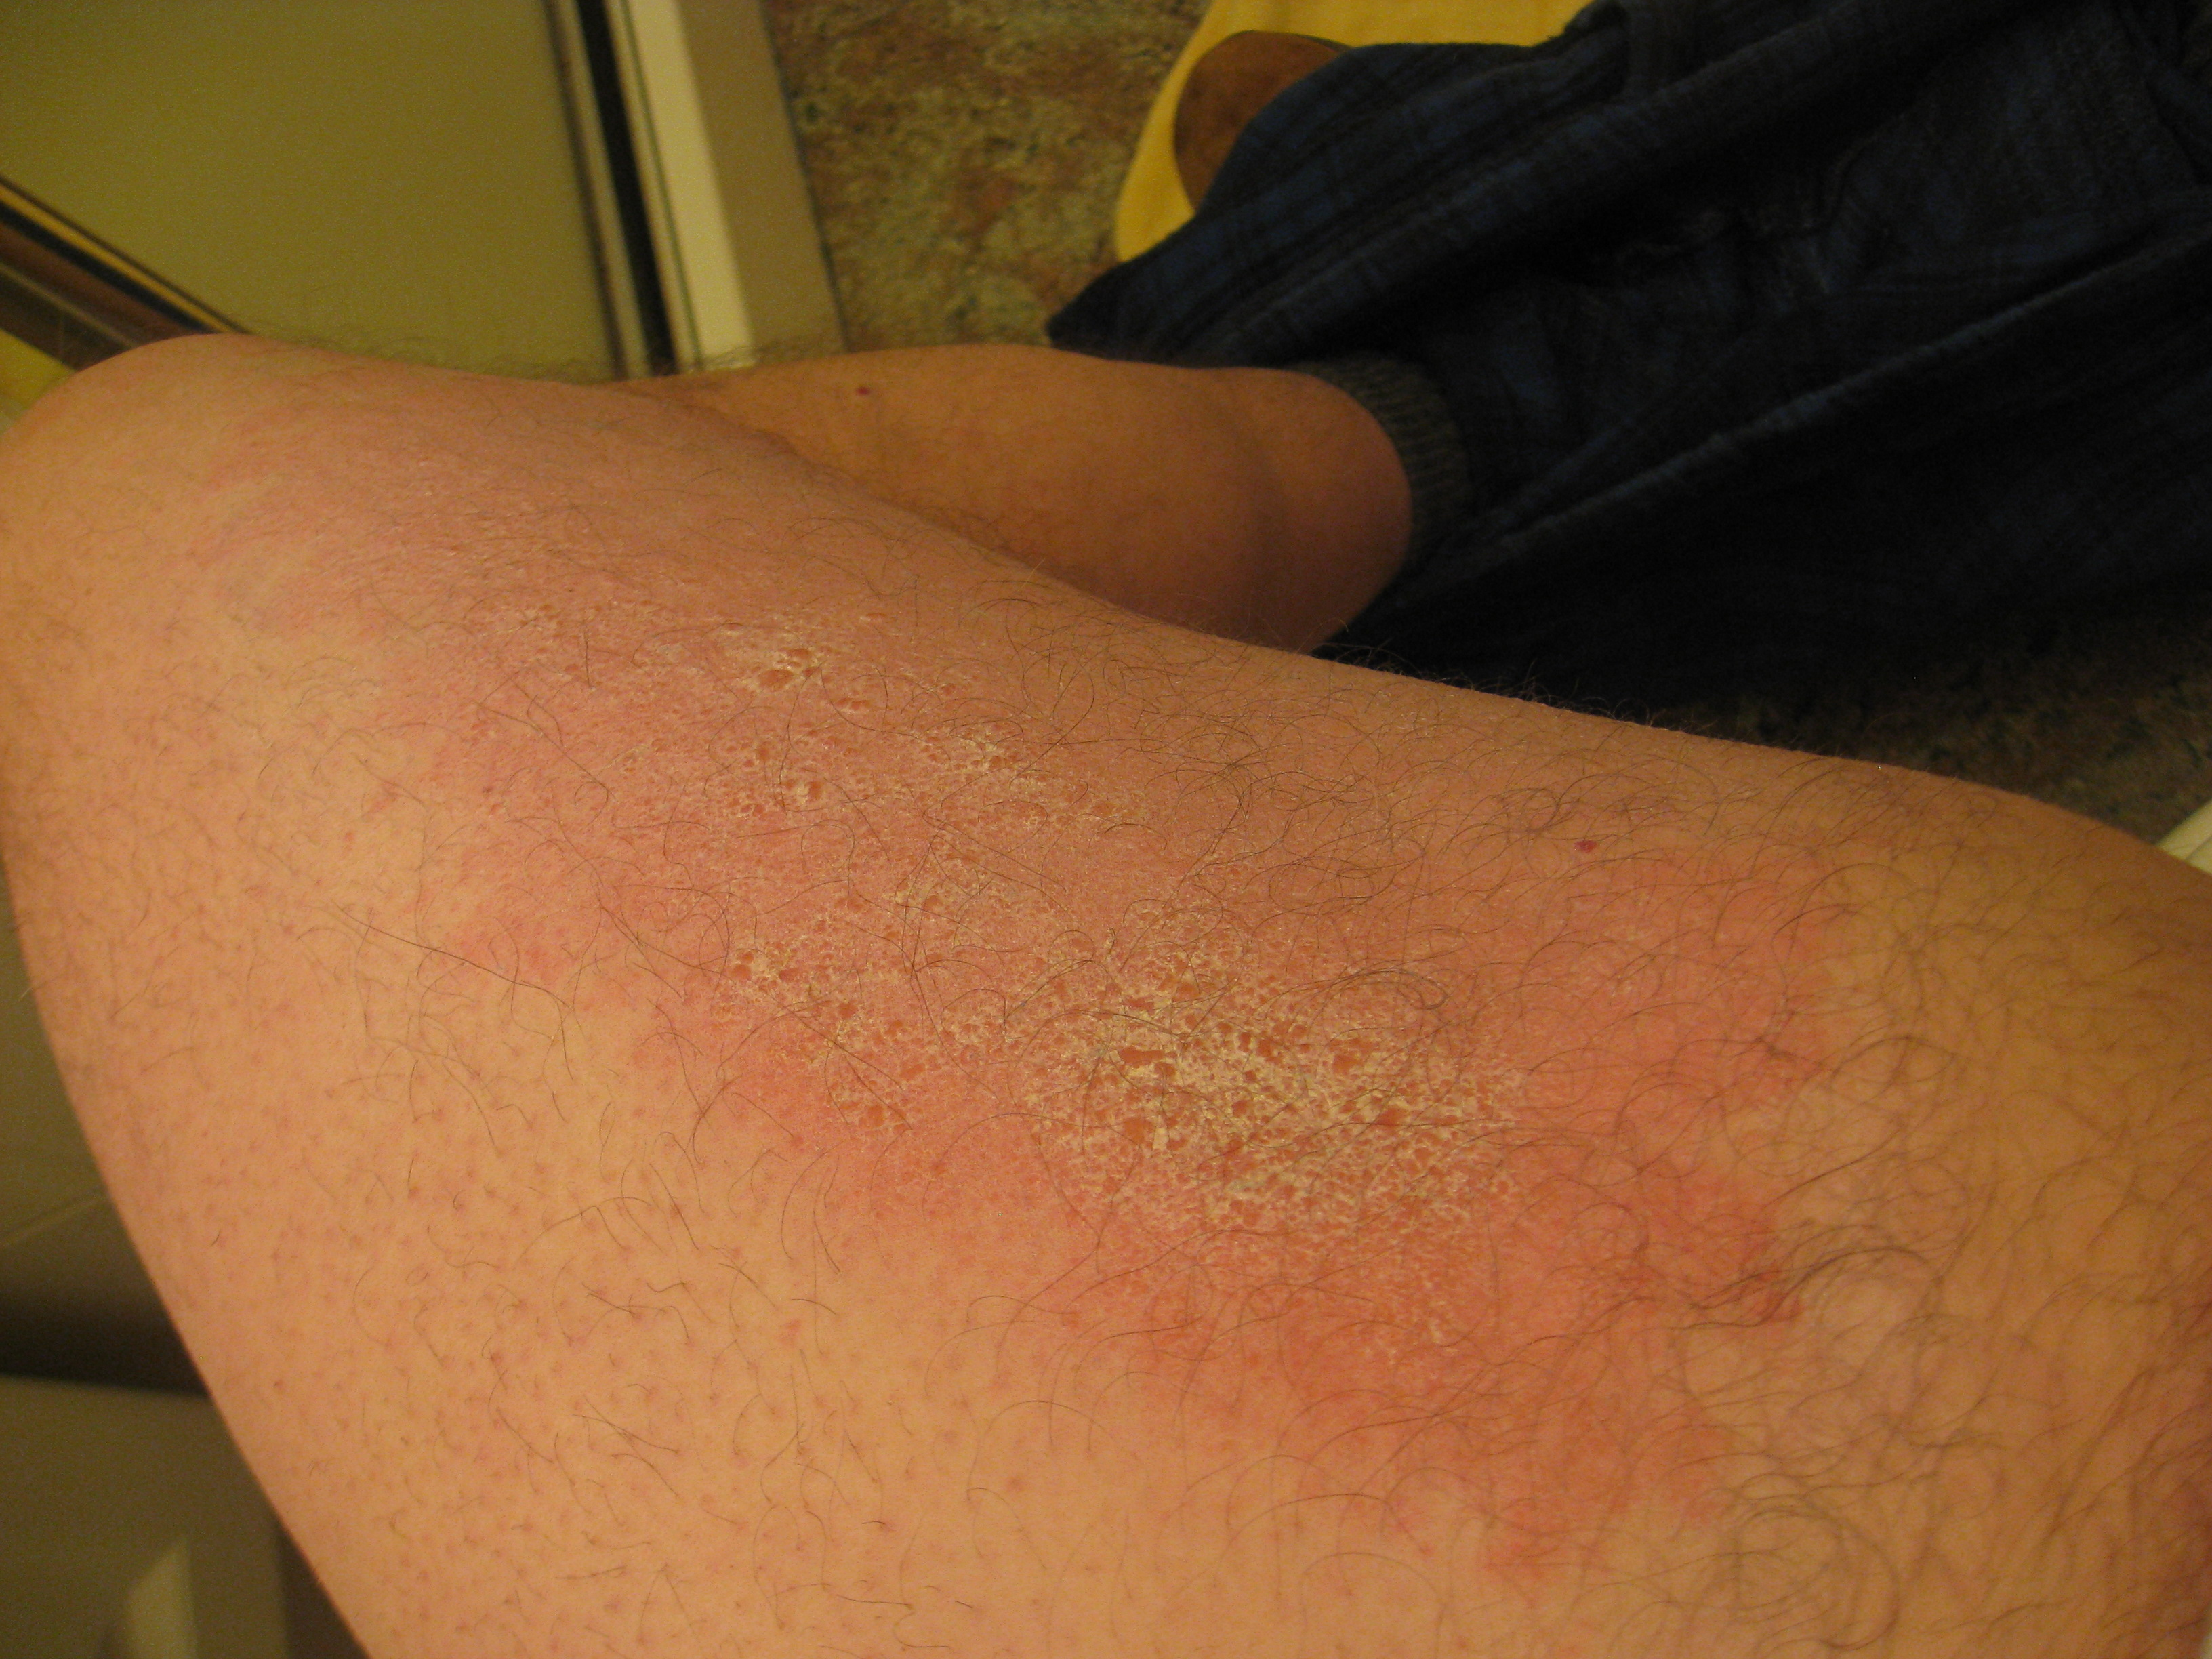 I have a large rash on both of my inner thighs that extends